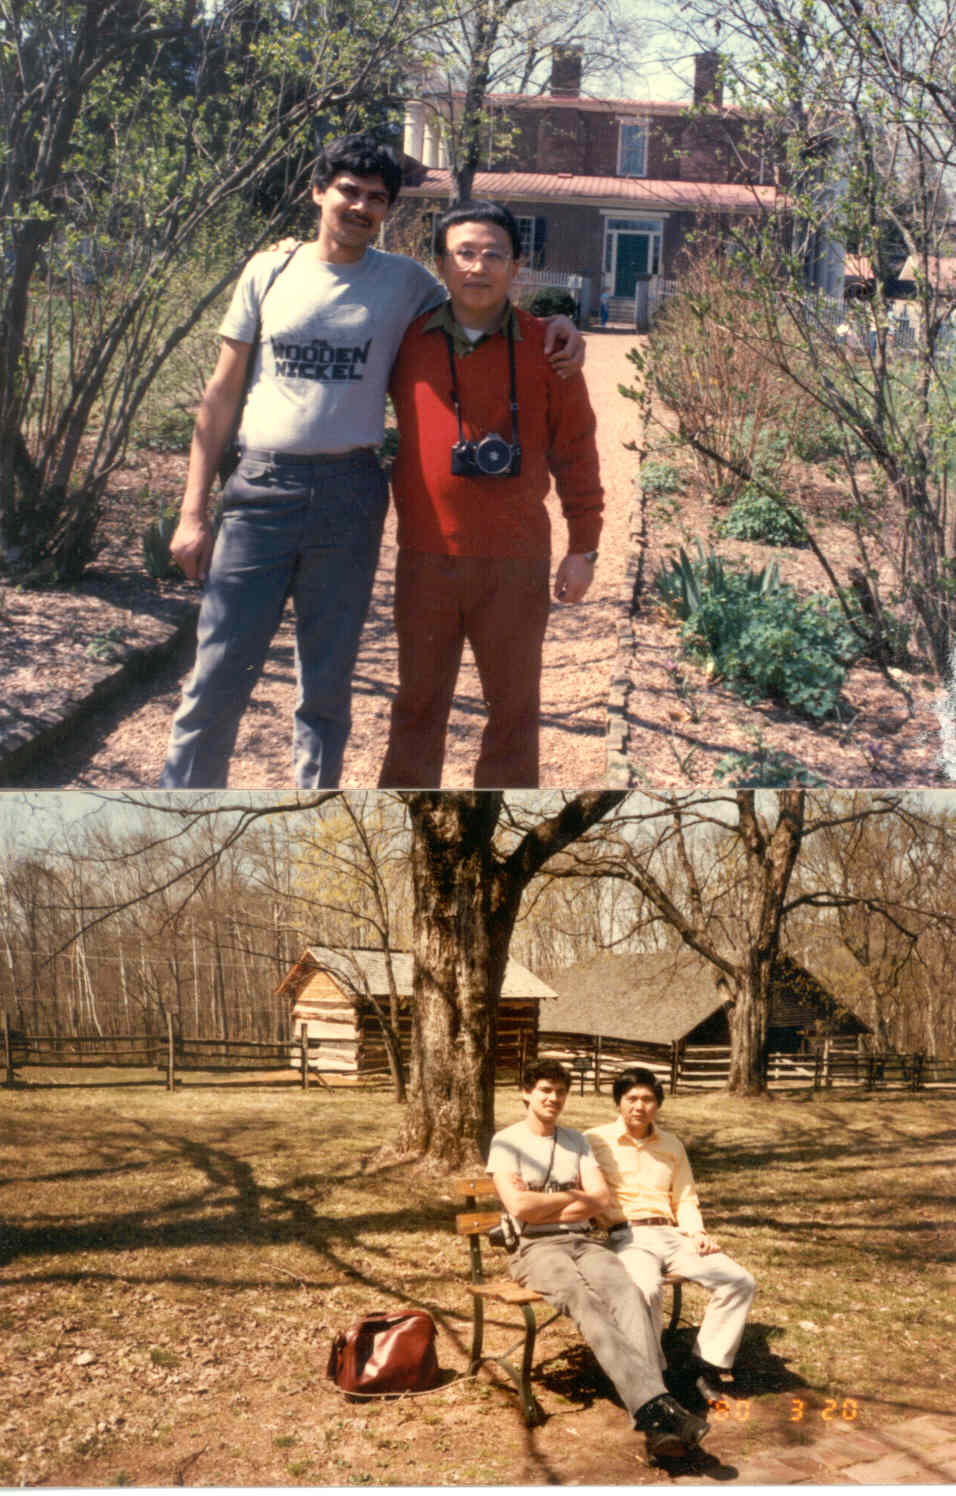 CLICK TO ENLARGE -Myself and my friend Ying (from Taiwan) and Sung (from Korea), on a foriegn student trip to Nashville, Tennesee (1987)